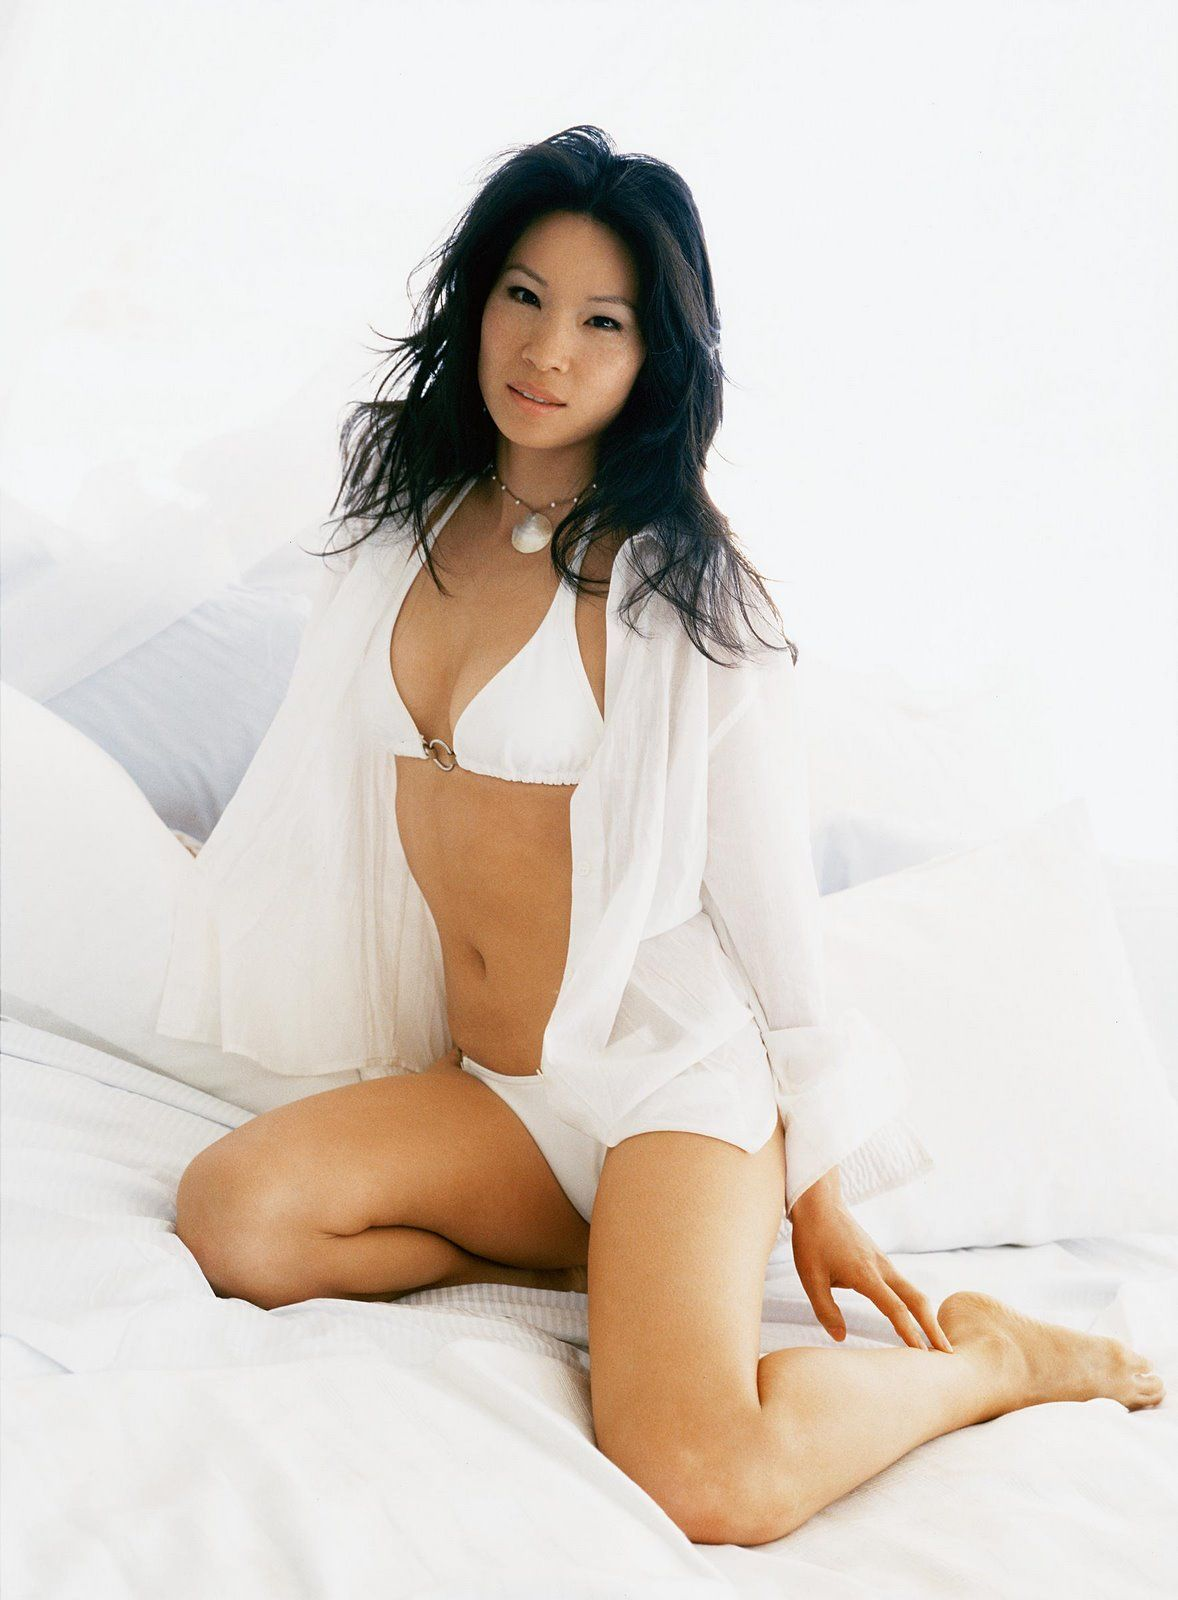 asian et pics /search?va=sexy celeb